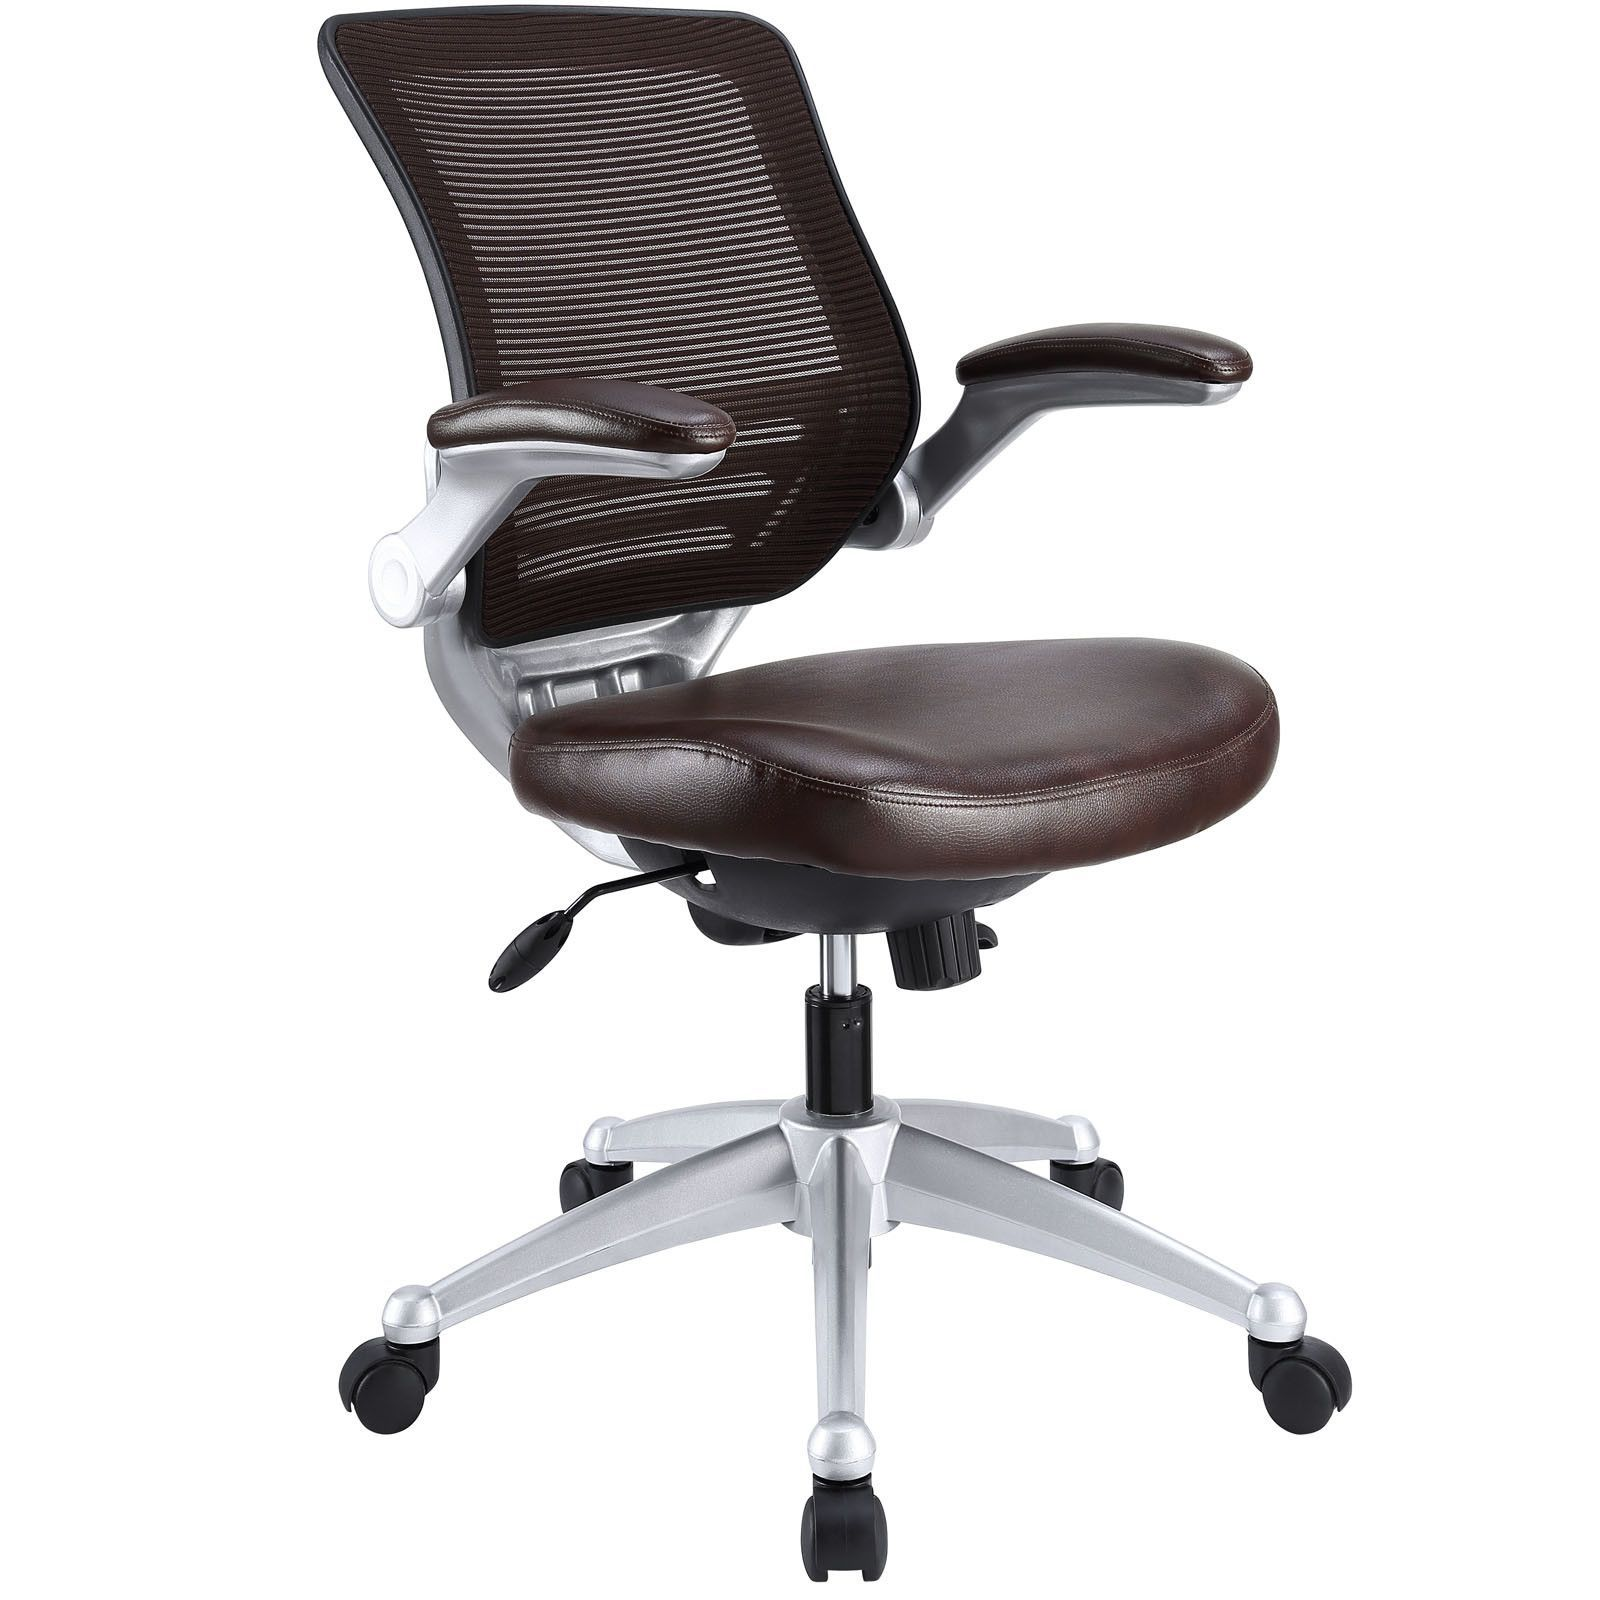 Edge High Back Mesh Executive Office Chair Office Chair Leather